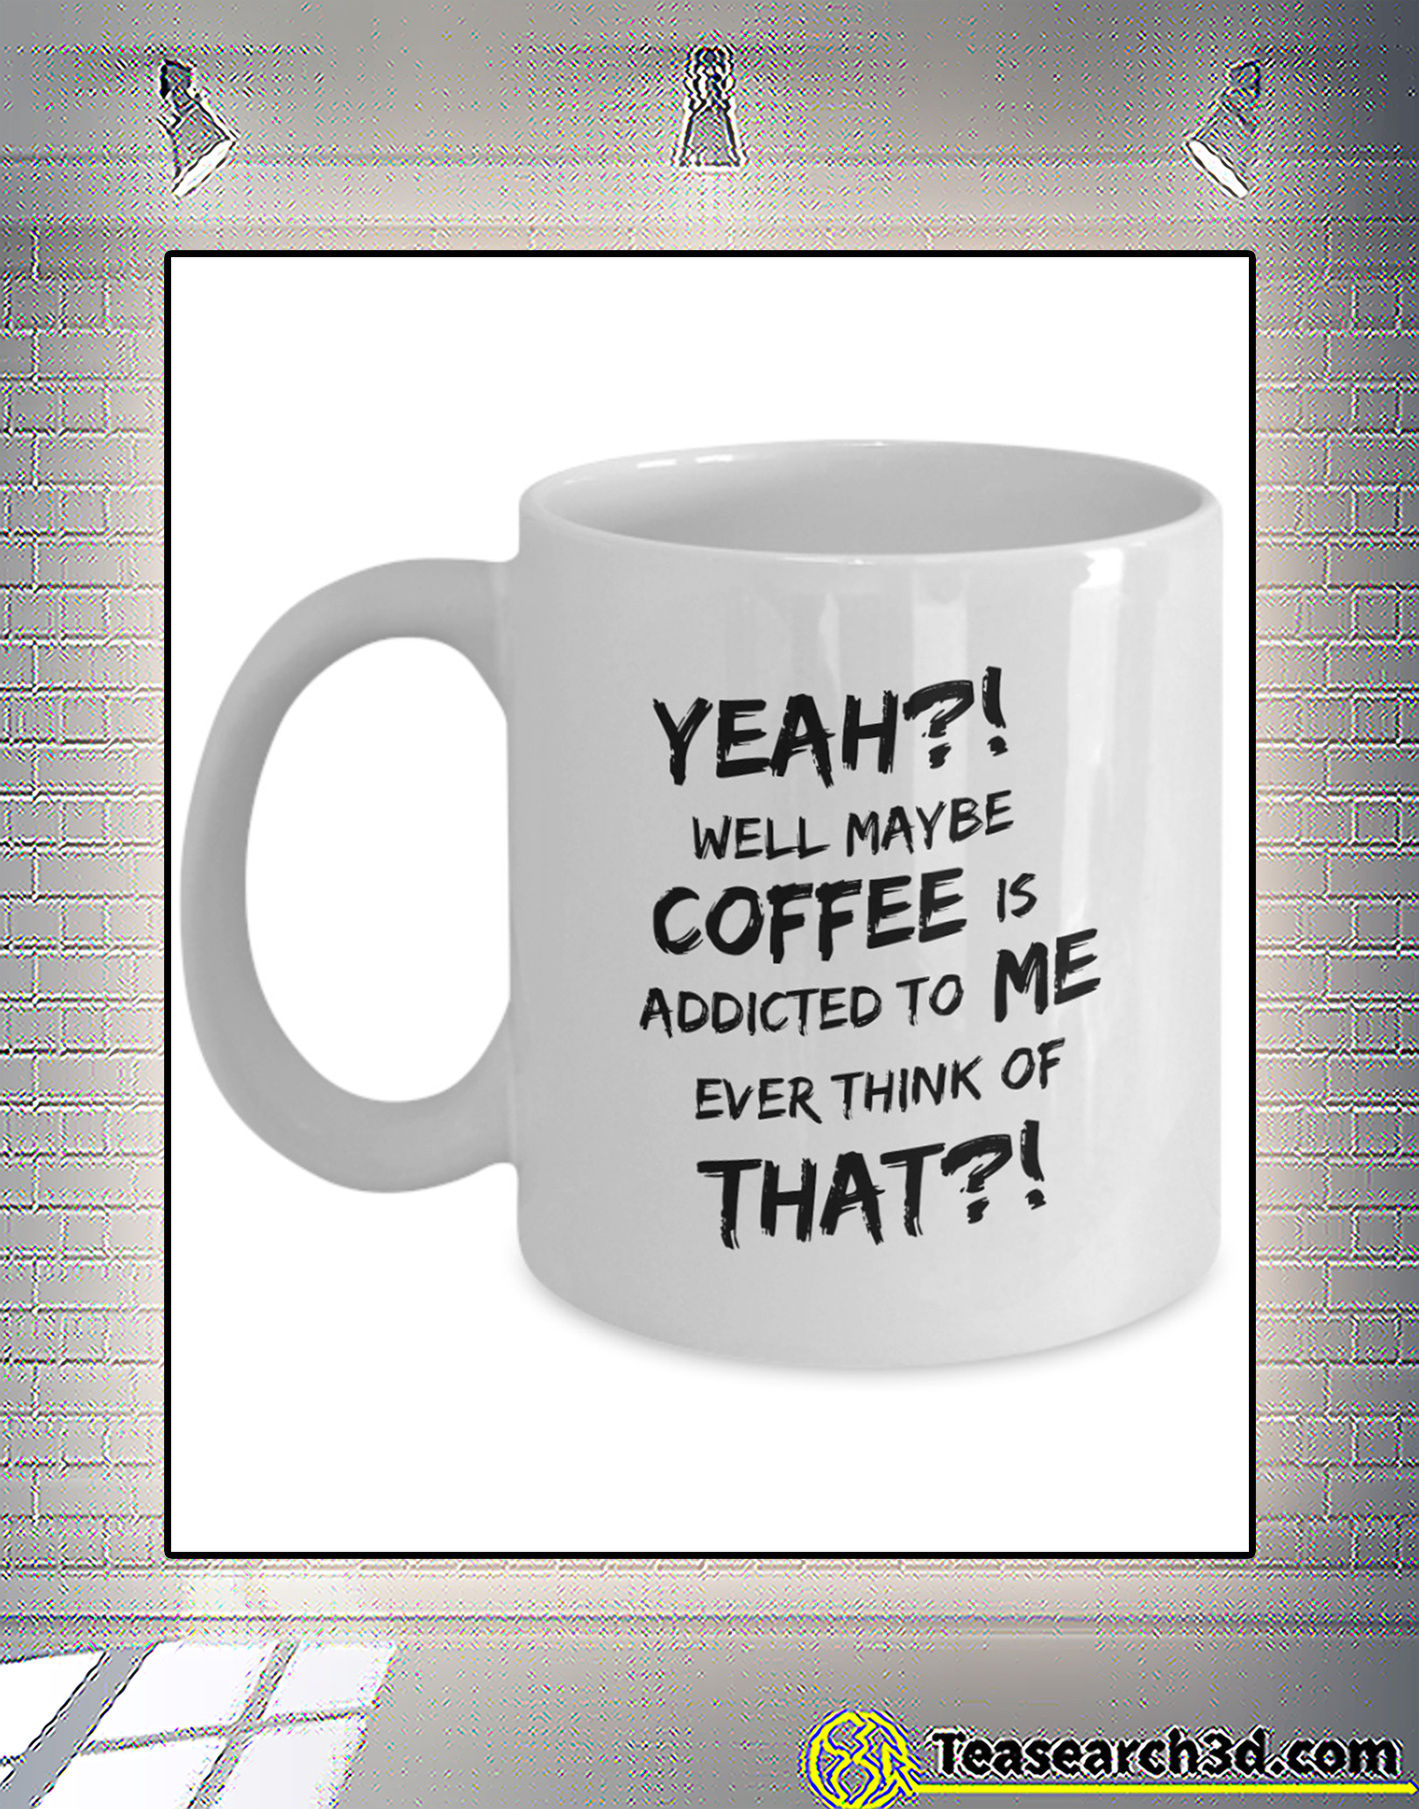 Yeah well maybe coffee is addicted to me ever think of that mug 1